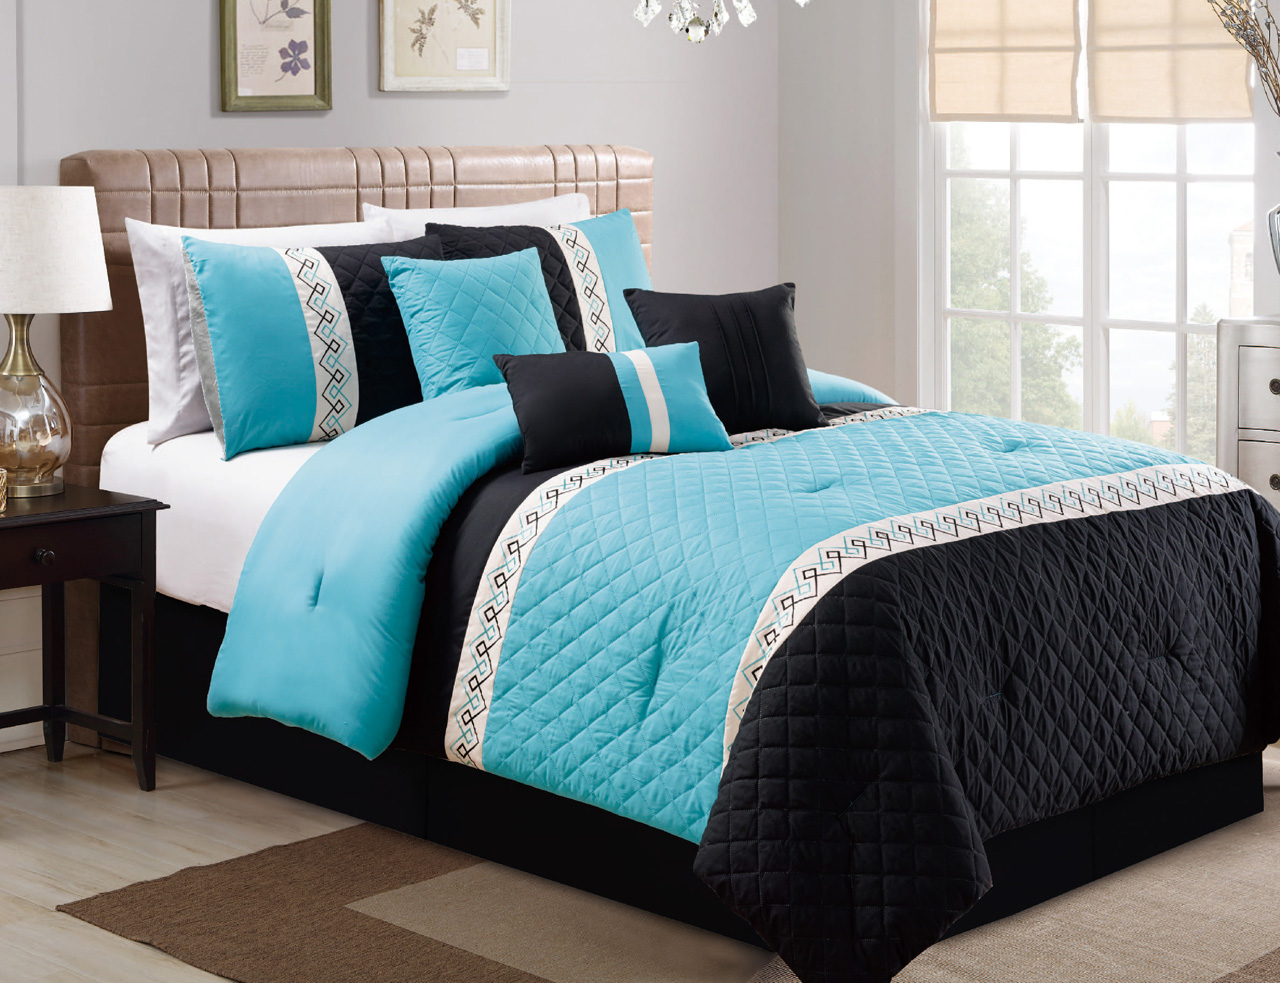 7 Piece Quilted Lattice Pink/Black/Ivory Comforter Set